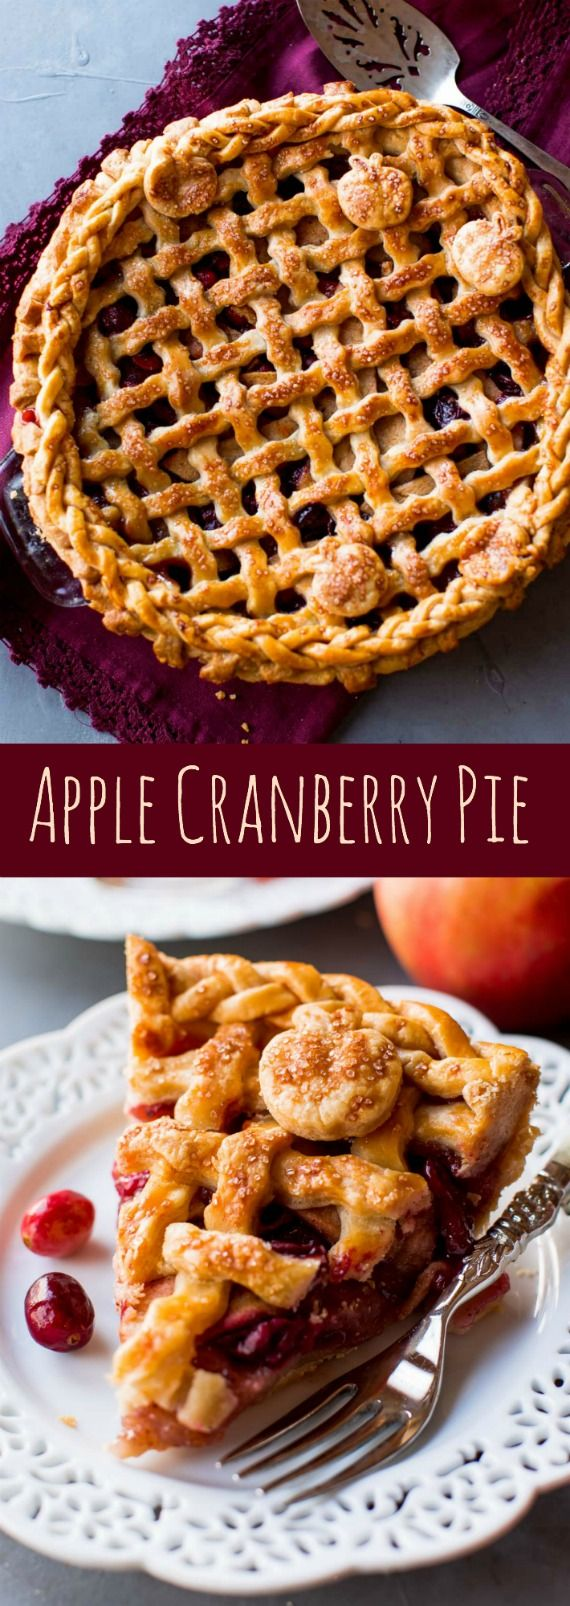 Sweet apples, tart cranberries, and cinnamon spice are the perfect balance in this incredible apple cranberry pie recipe! Recipe on sallysbakingaddic...